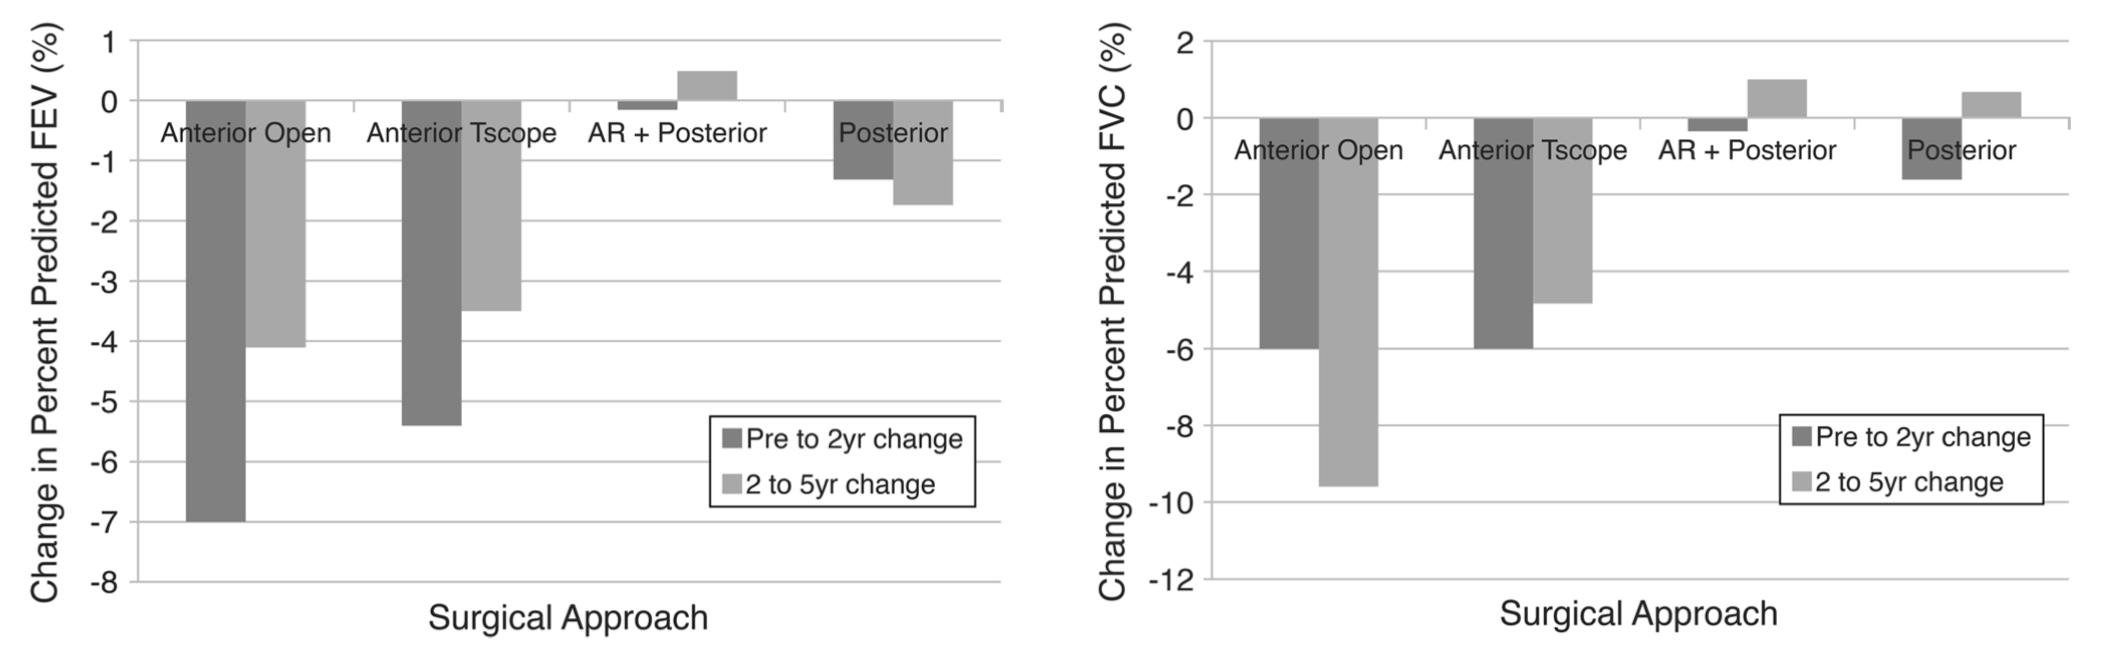 Progressive decline in pulmonary function 5 years post-operatively in patients who underwent anterior instrumentation for surgical correction of adolescent idiopathic scoliosis